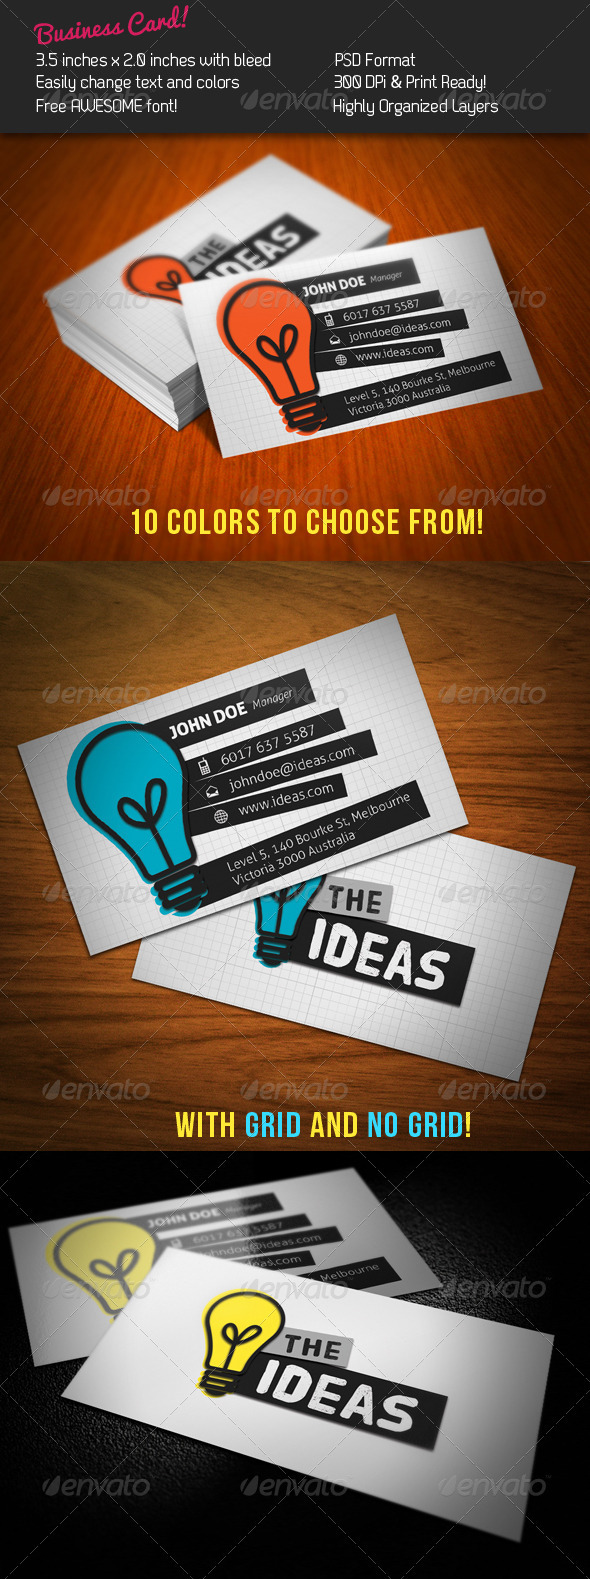 Ideas Business Card - Creative Business Cards